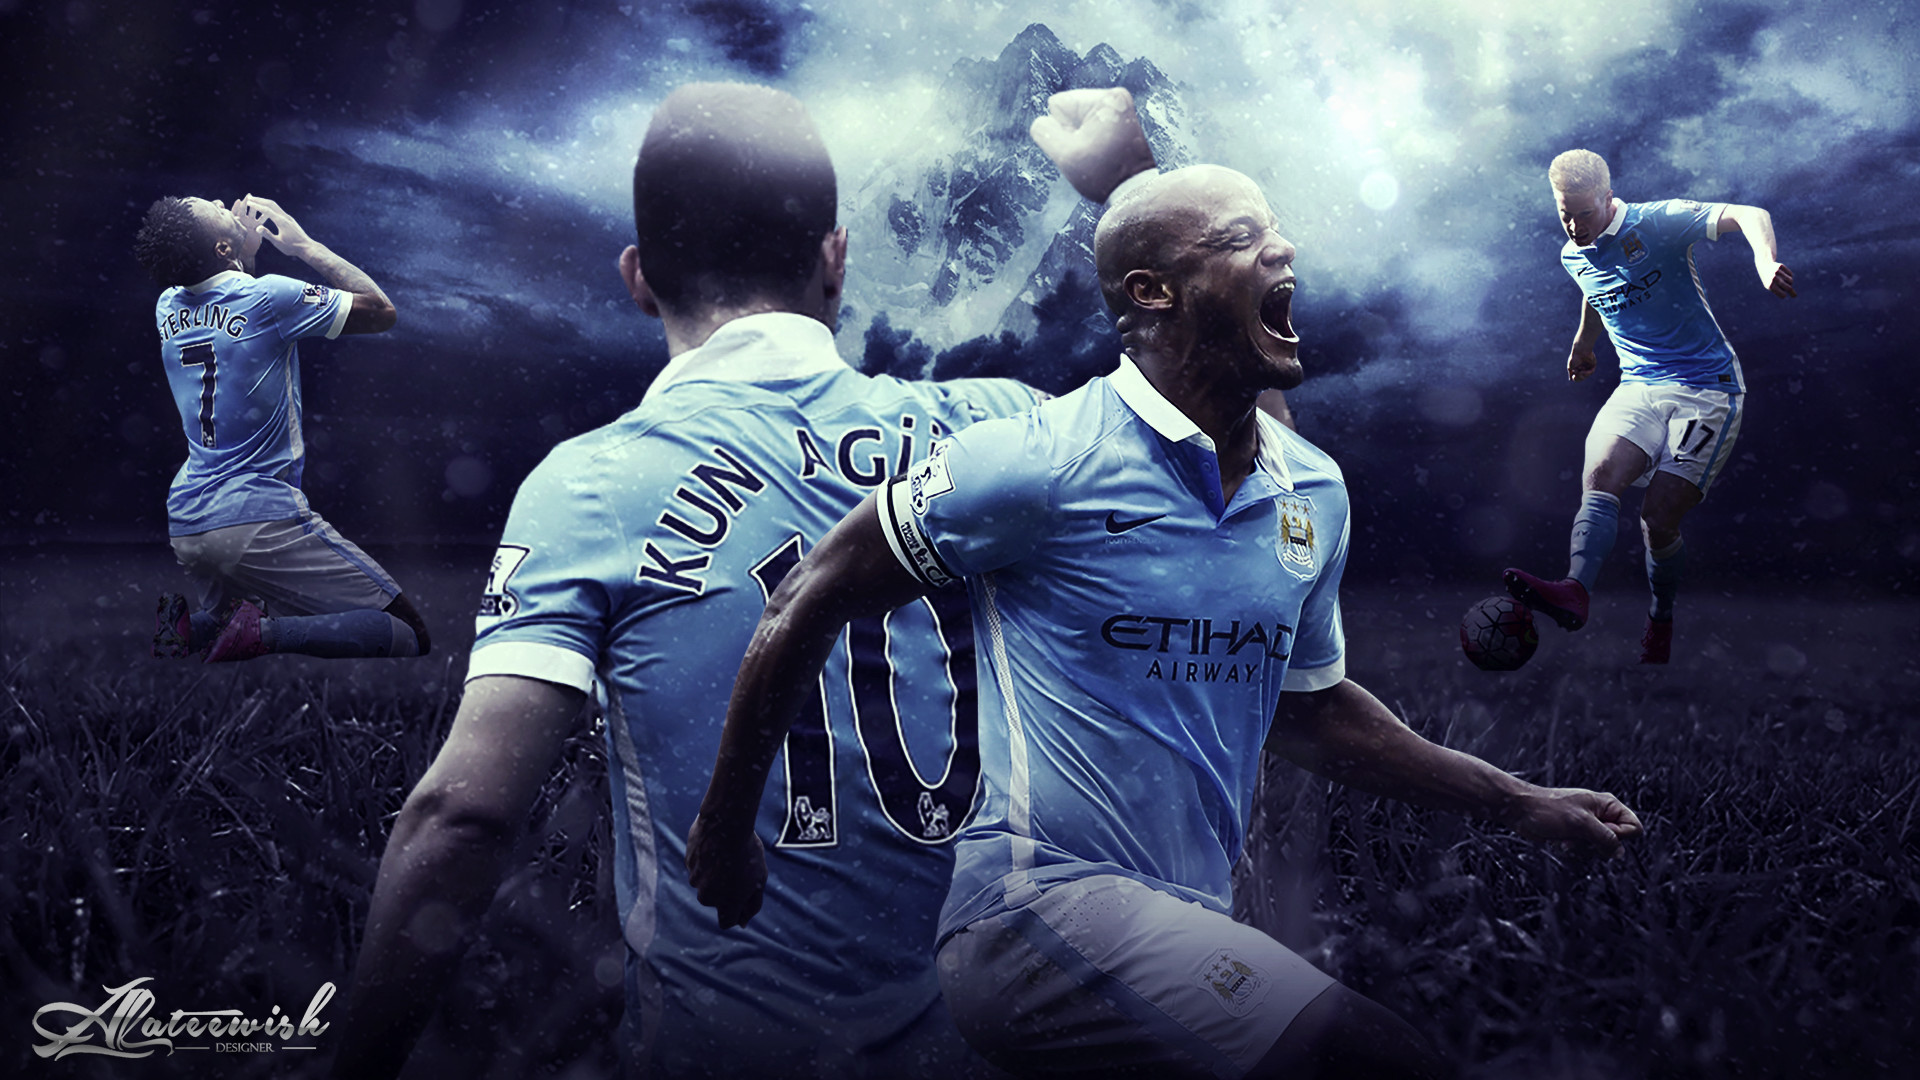 Manchester City Fc Wallpaper: Manchester City IPhone Wallpaper (74+ Images